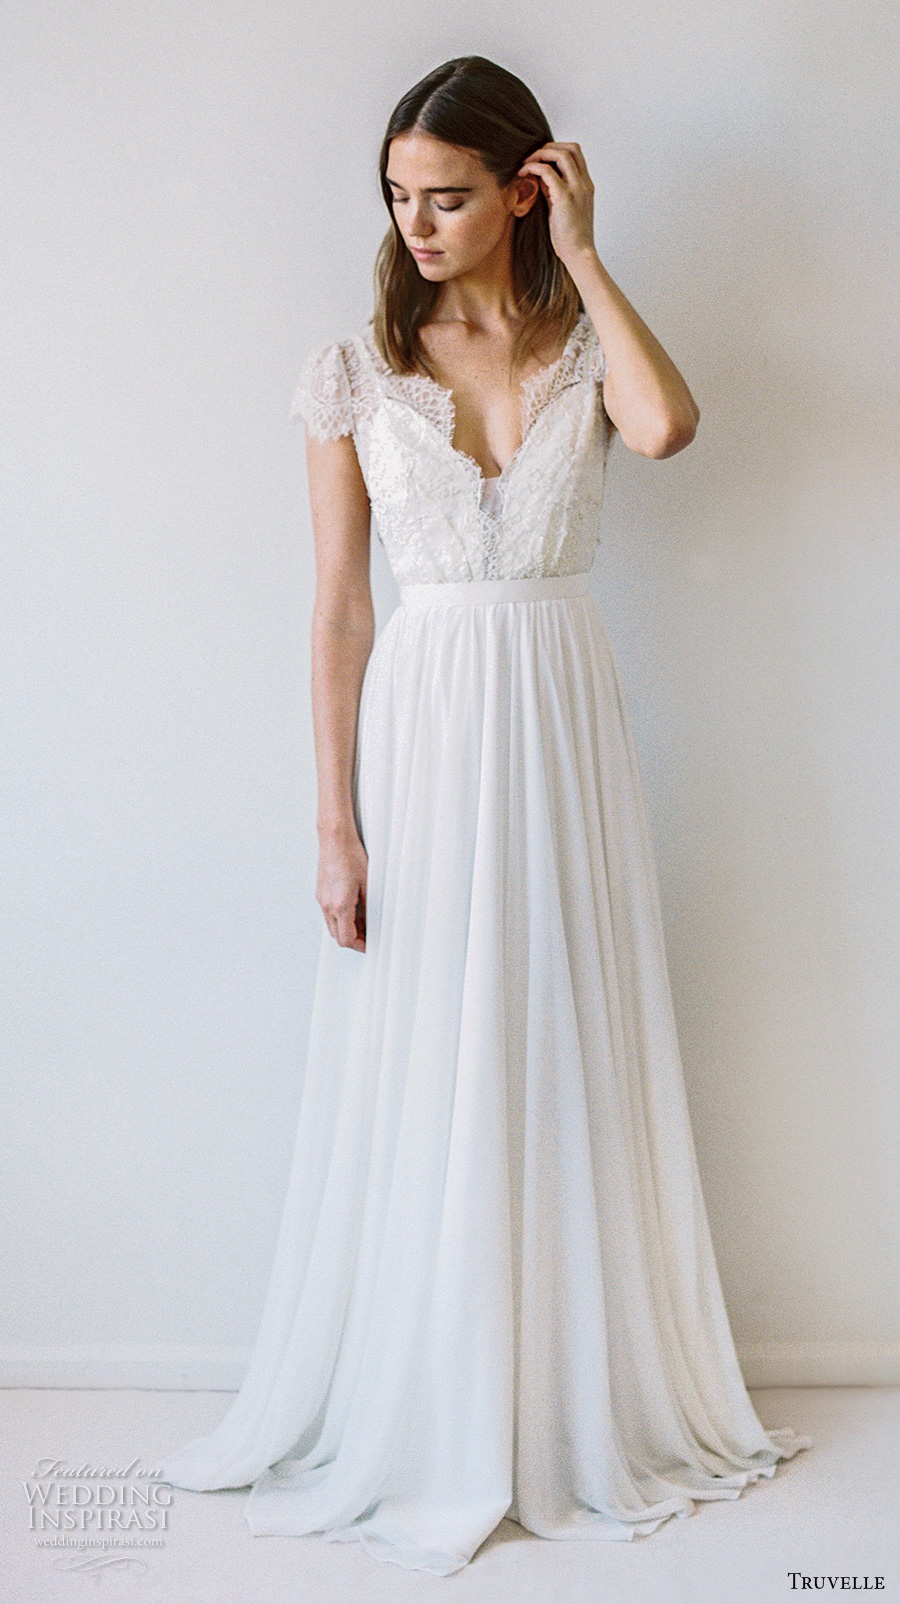 truvelle 2017 bridal cap sleeves deep plunging v neckline heavily embellished bodice romantic modified a line wedding dress open back sweep train (cambie) mv